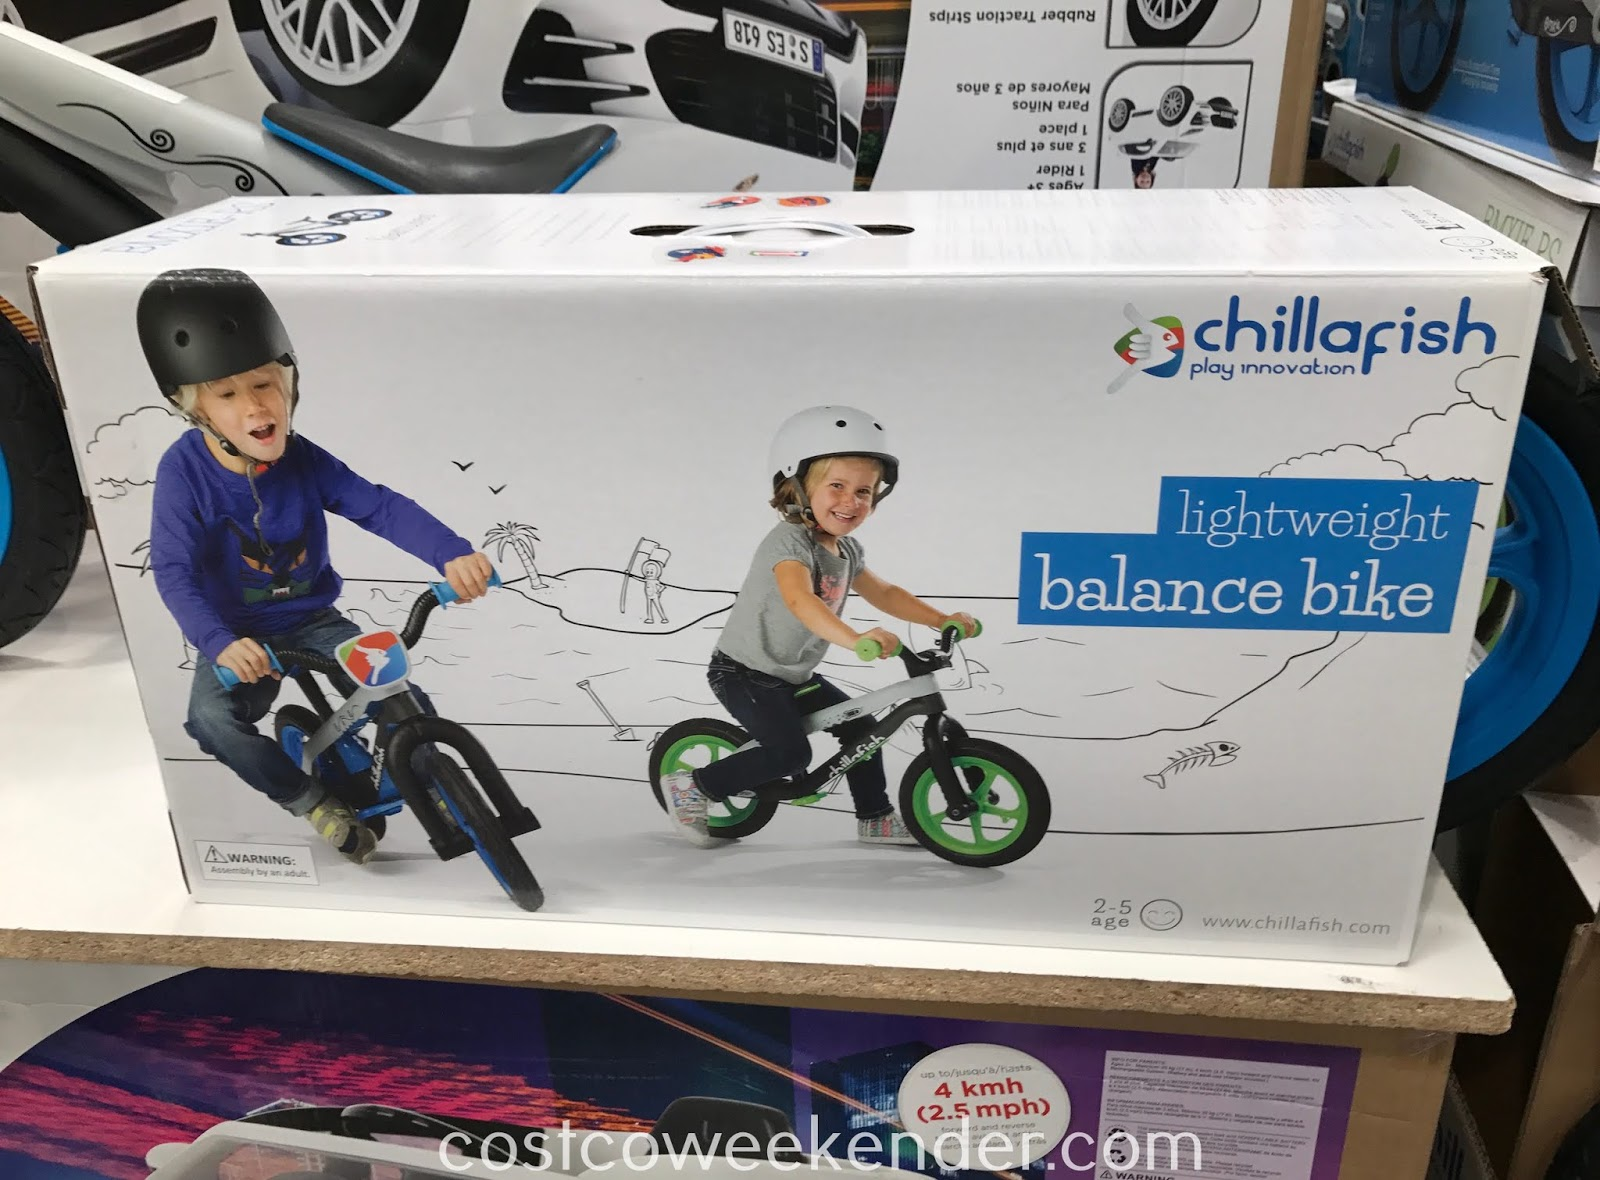 Chillafish Balance Bike: easier to use than bikes with training wheels